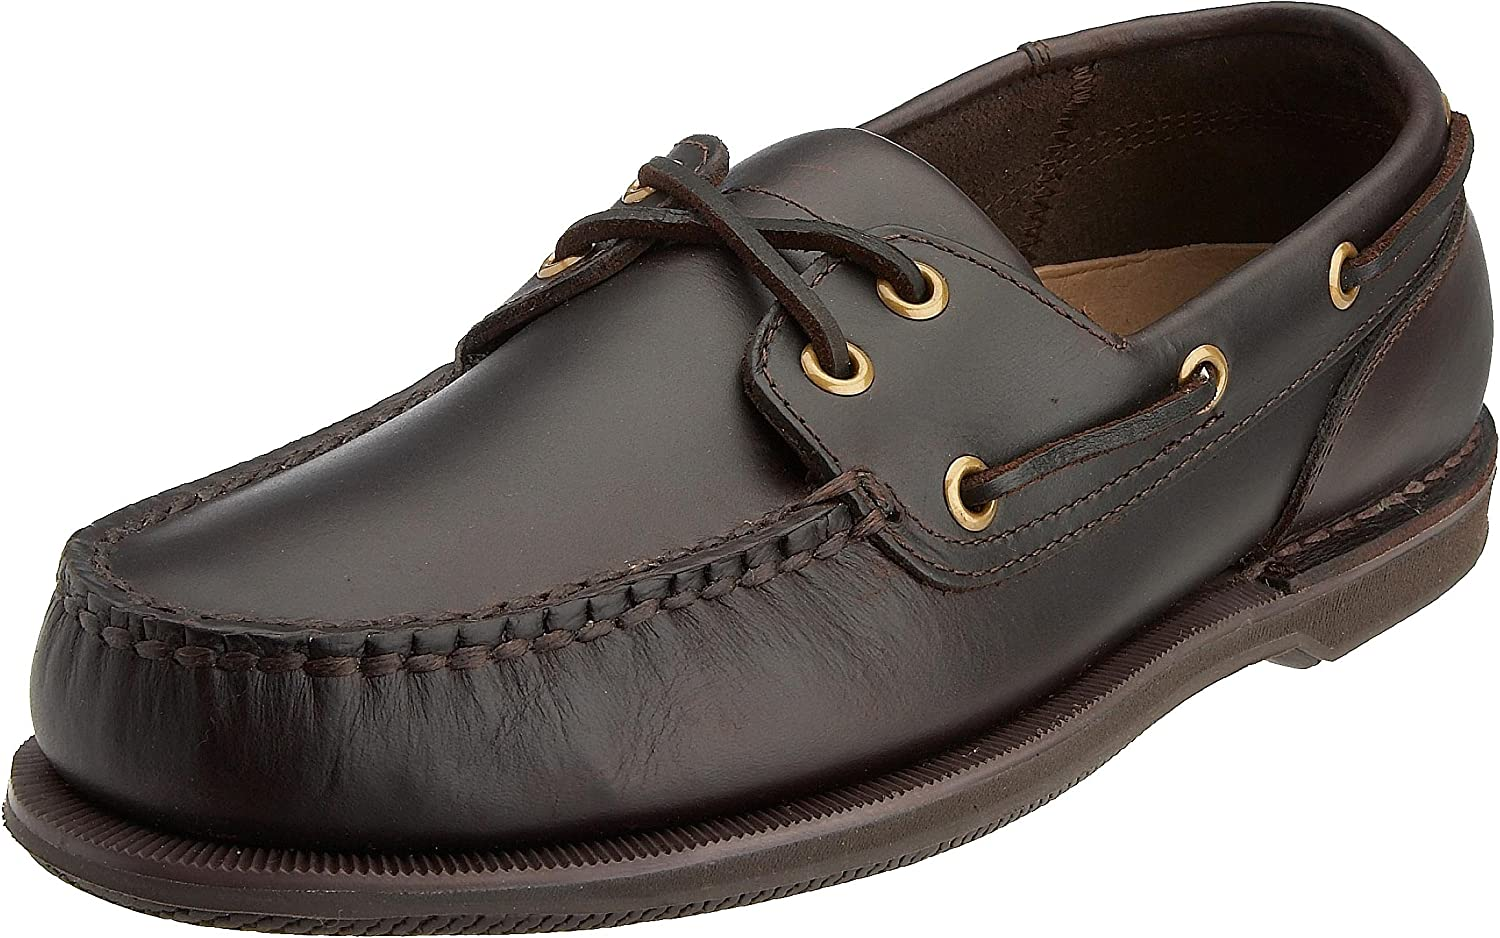 Rockport Mans Mans Mans Perth Boat skor Dark bspringaaa 10 2E USA  lycklig shopping